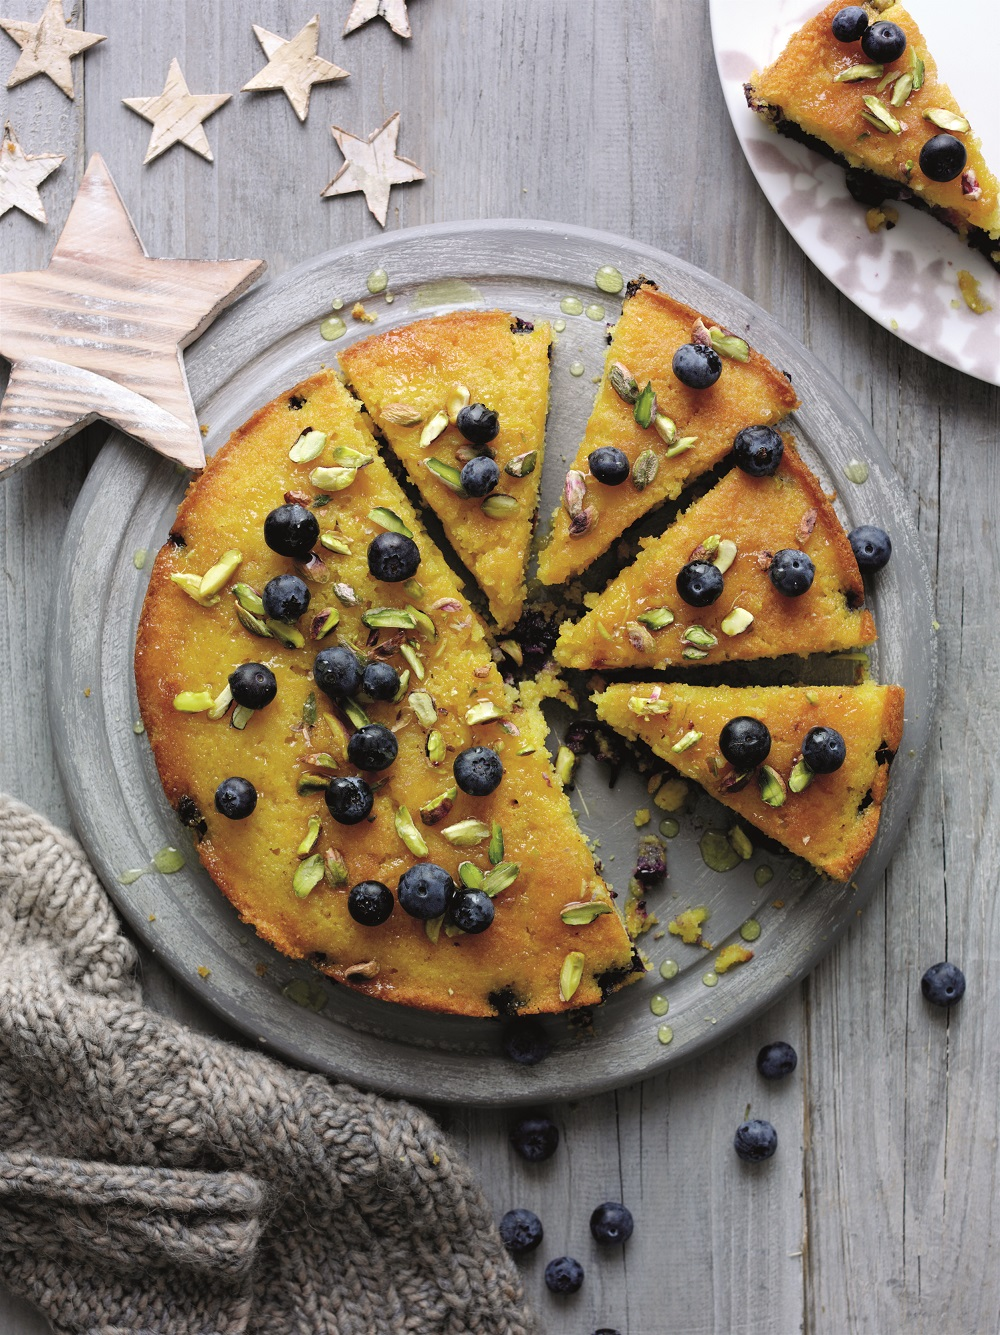 How To Make A Blueberry, Orange And Polenta Cake